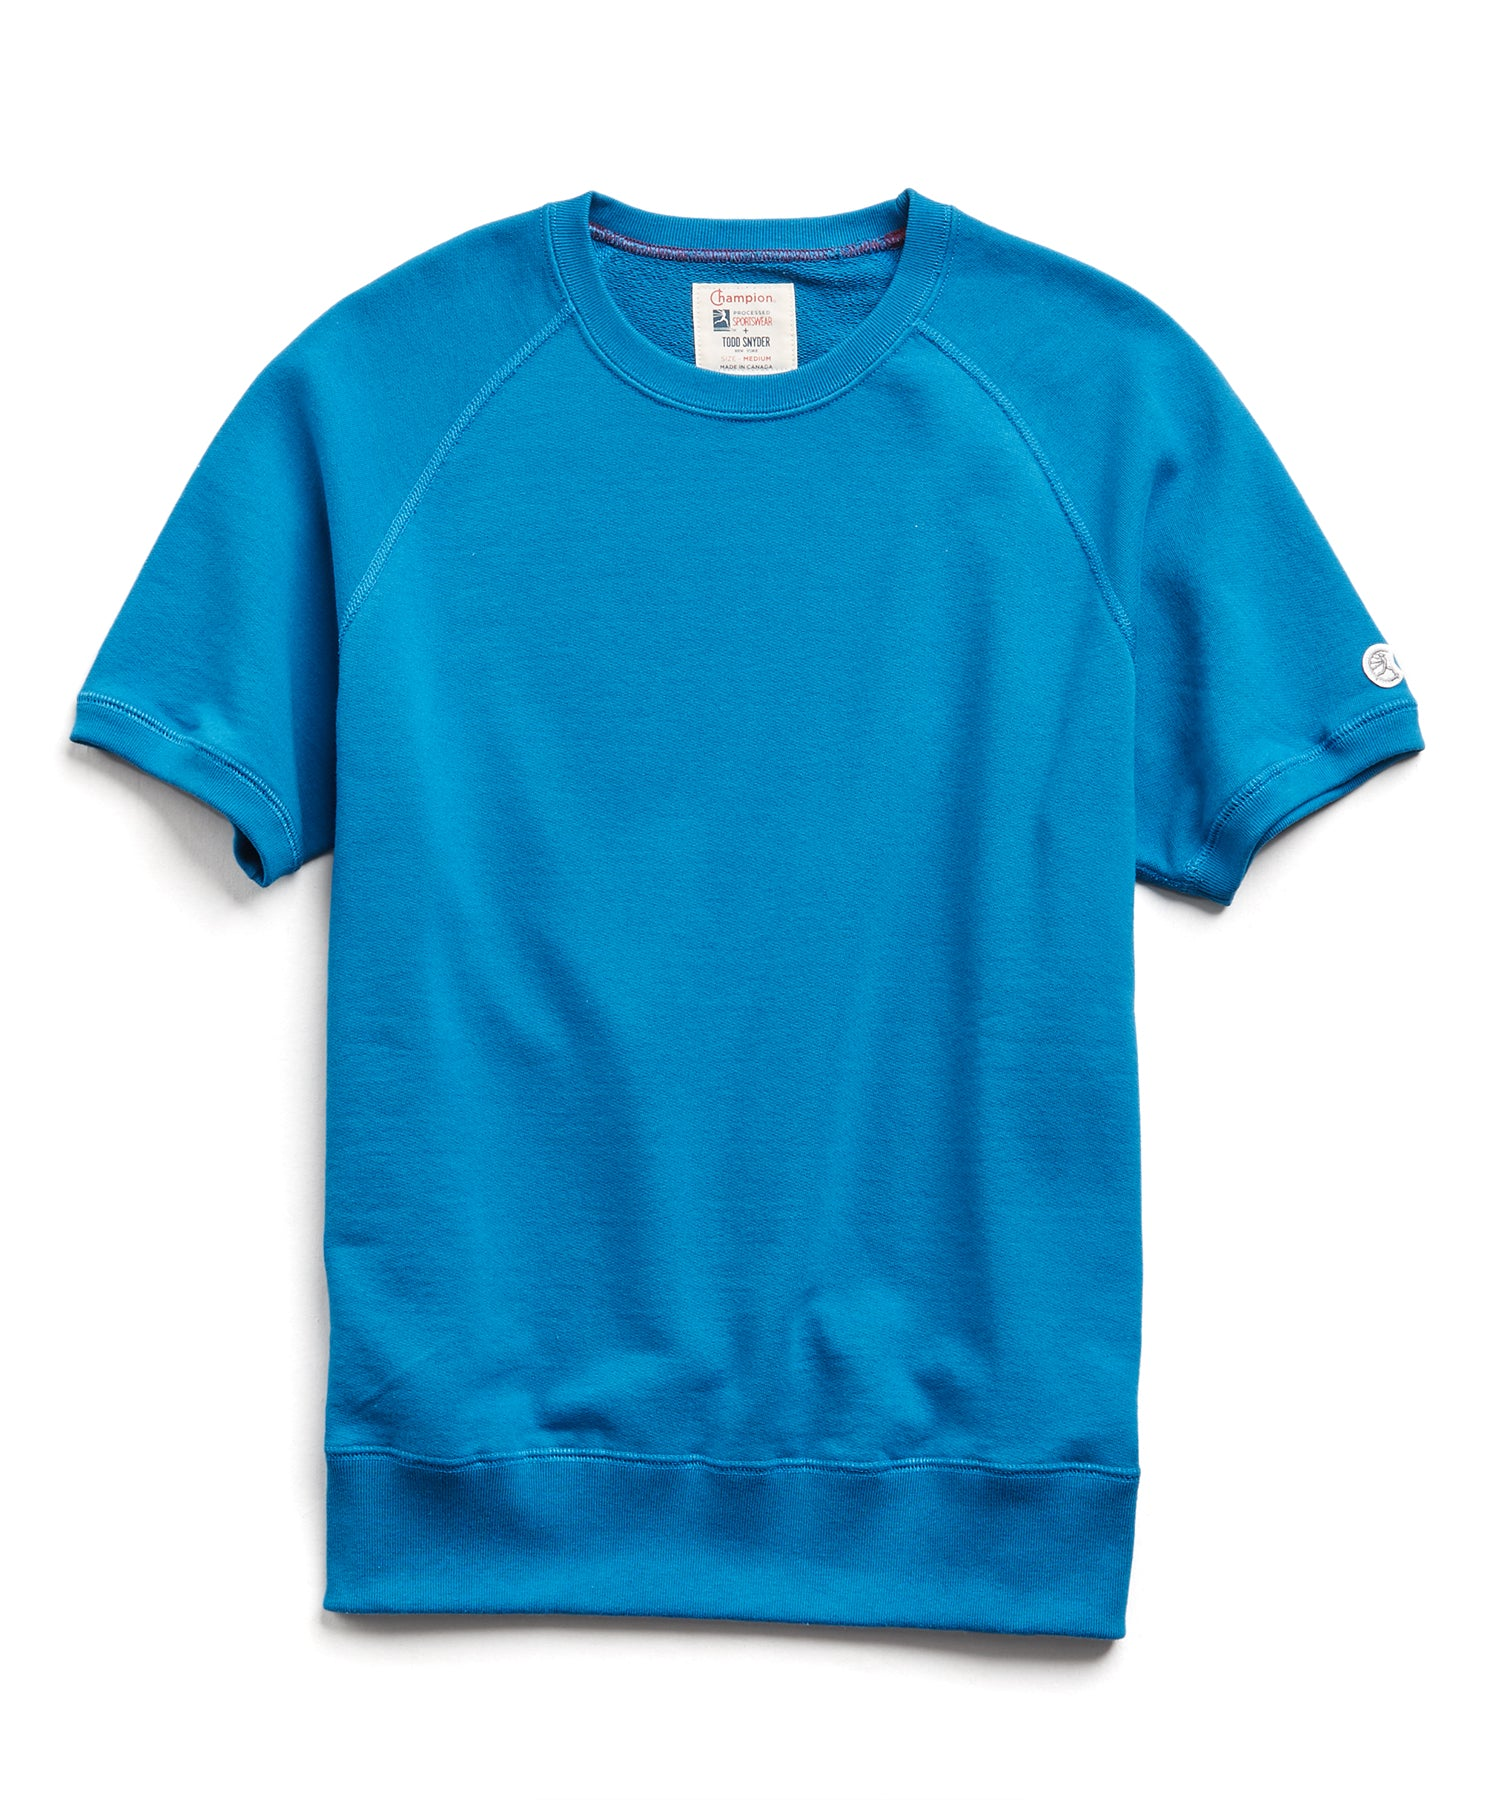 Terry Short Sleeve Sweatshirt in Slate Teal